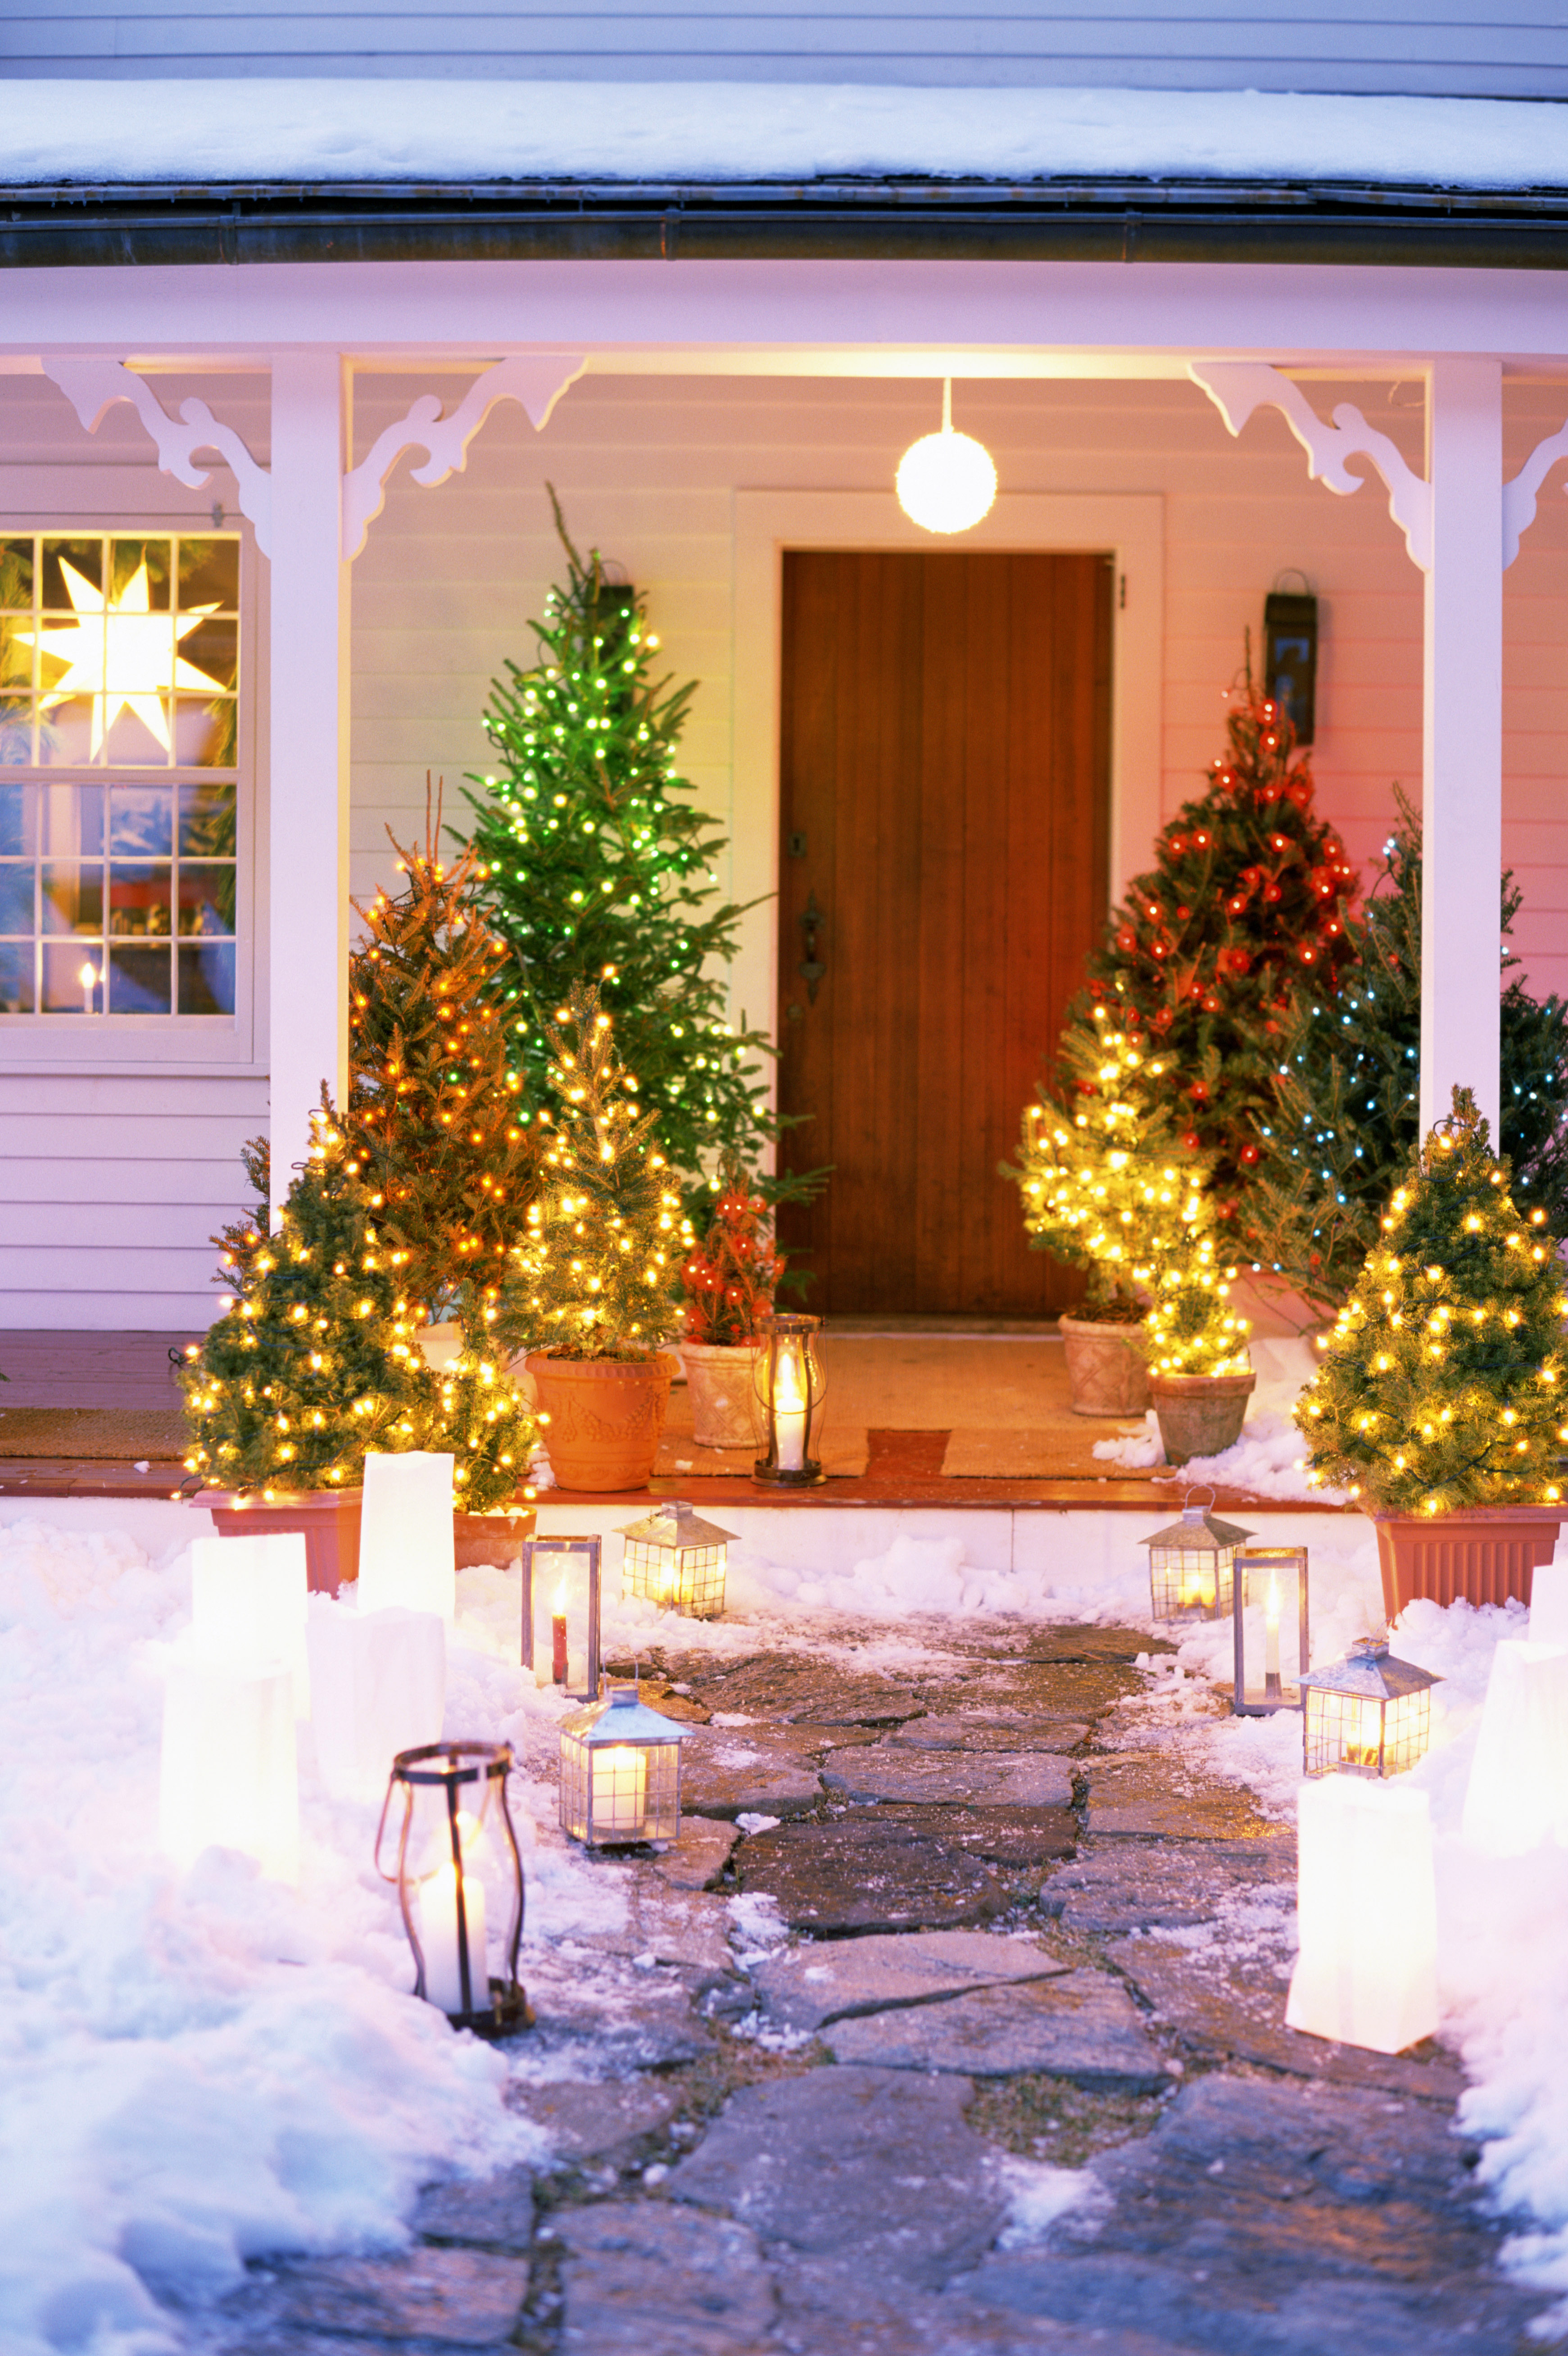 christmas house lighting ideas. 17 outdoor christmas light decoration ideas outside lights display pictures house lighting d